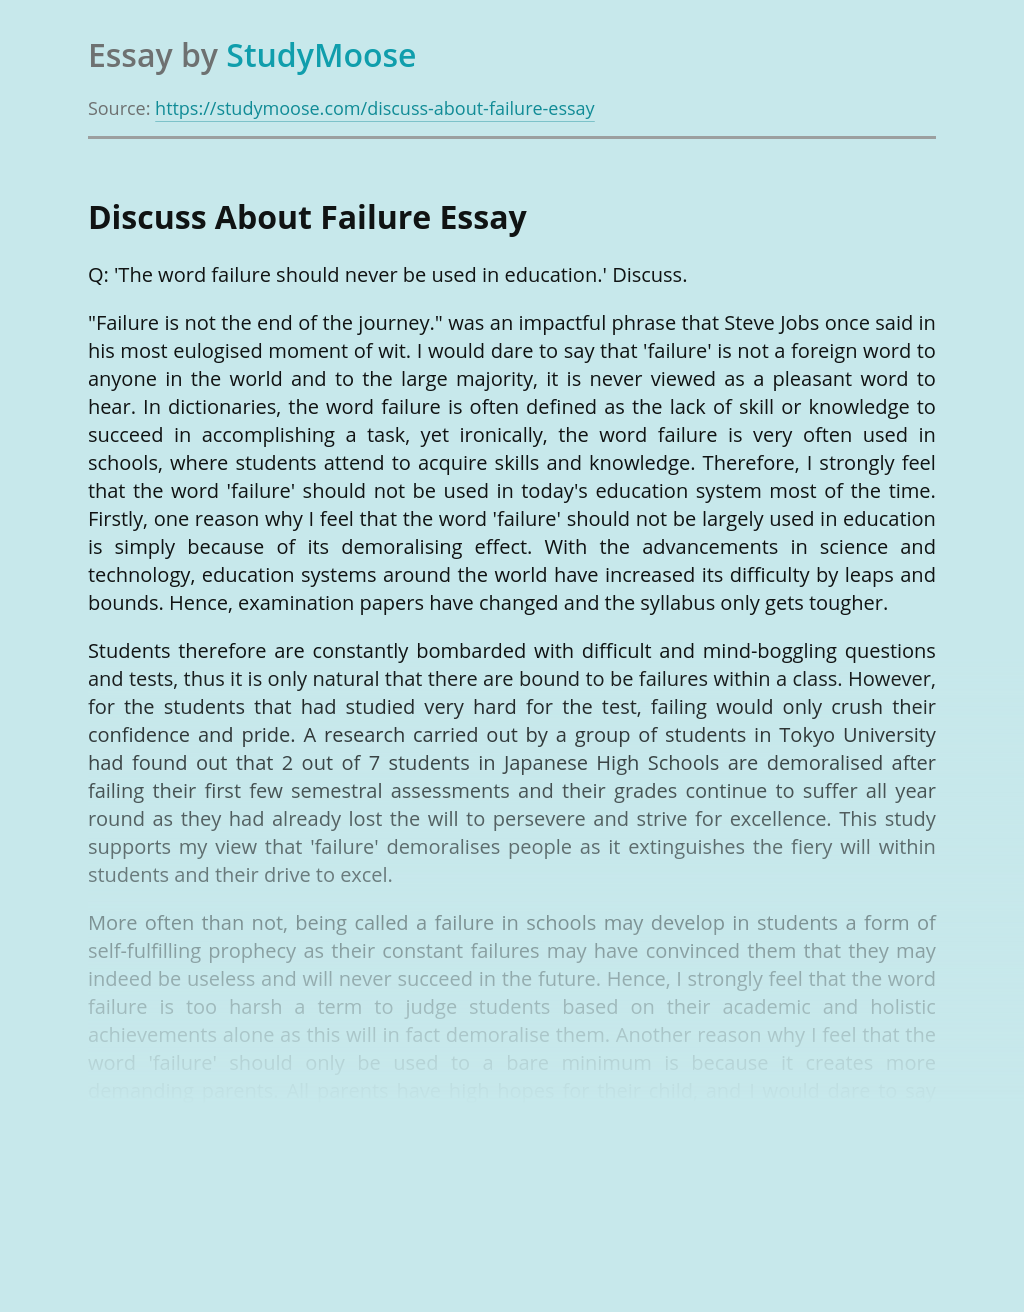 Discuss About Failure